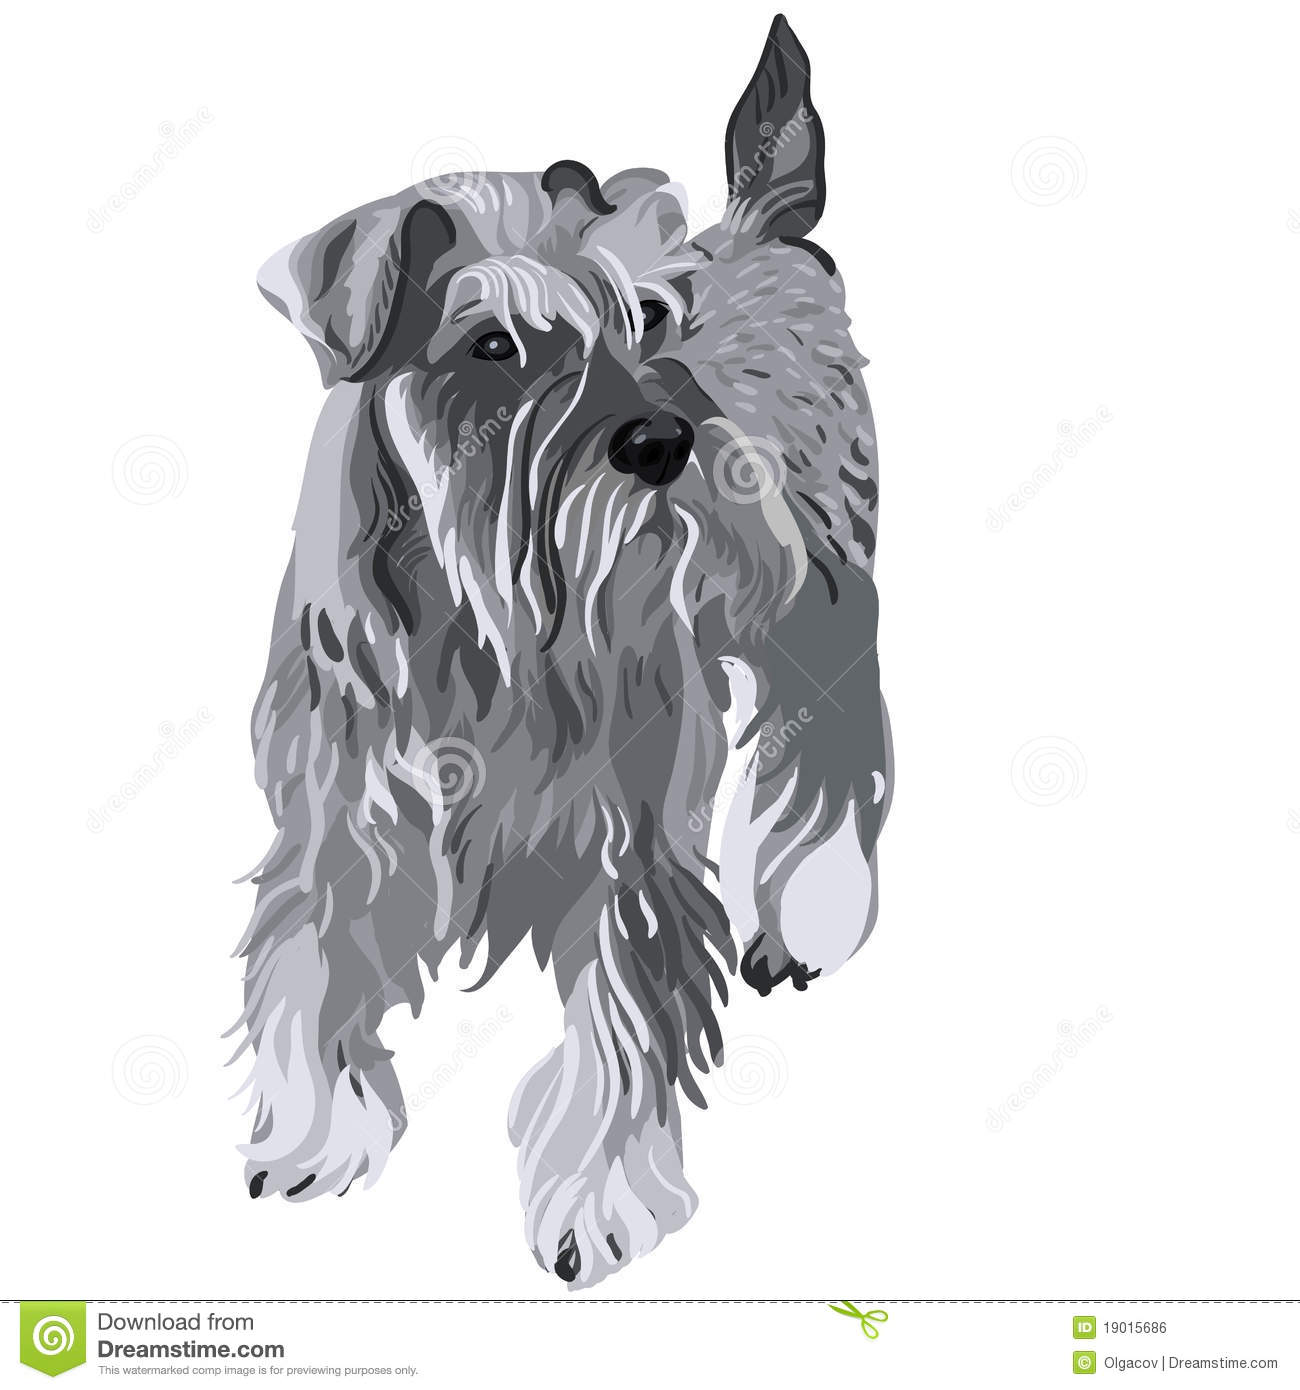 schnauzer coloring page - vector miniature schnauzer dog royalty free stock image